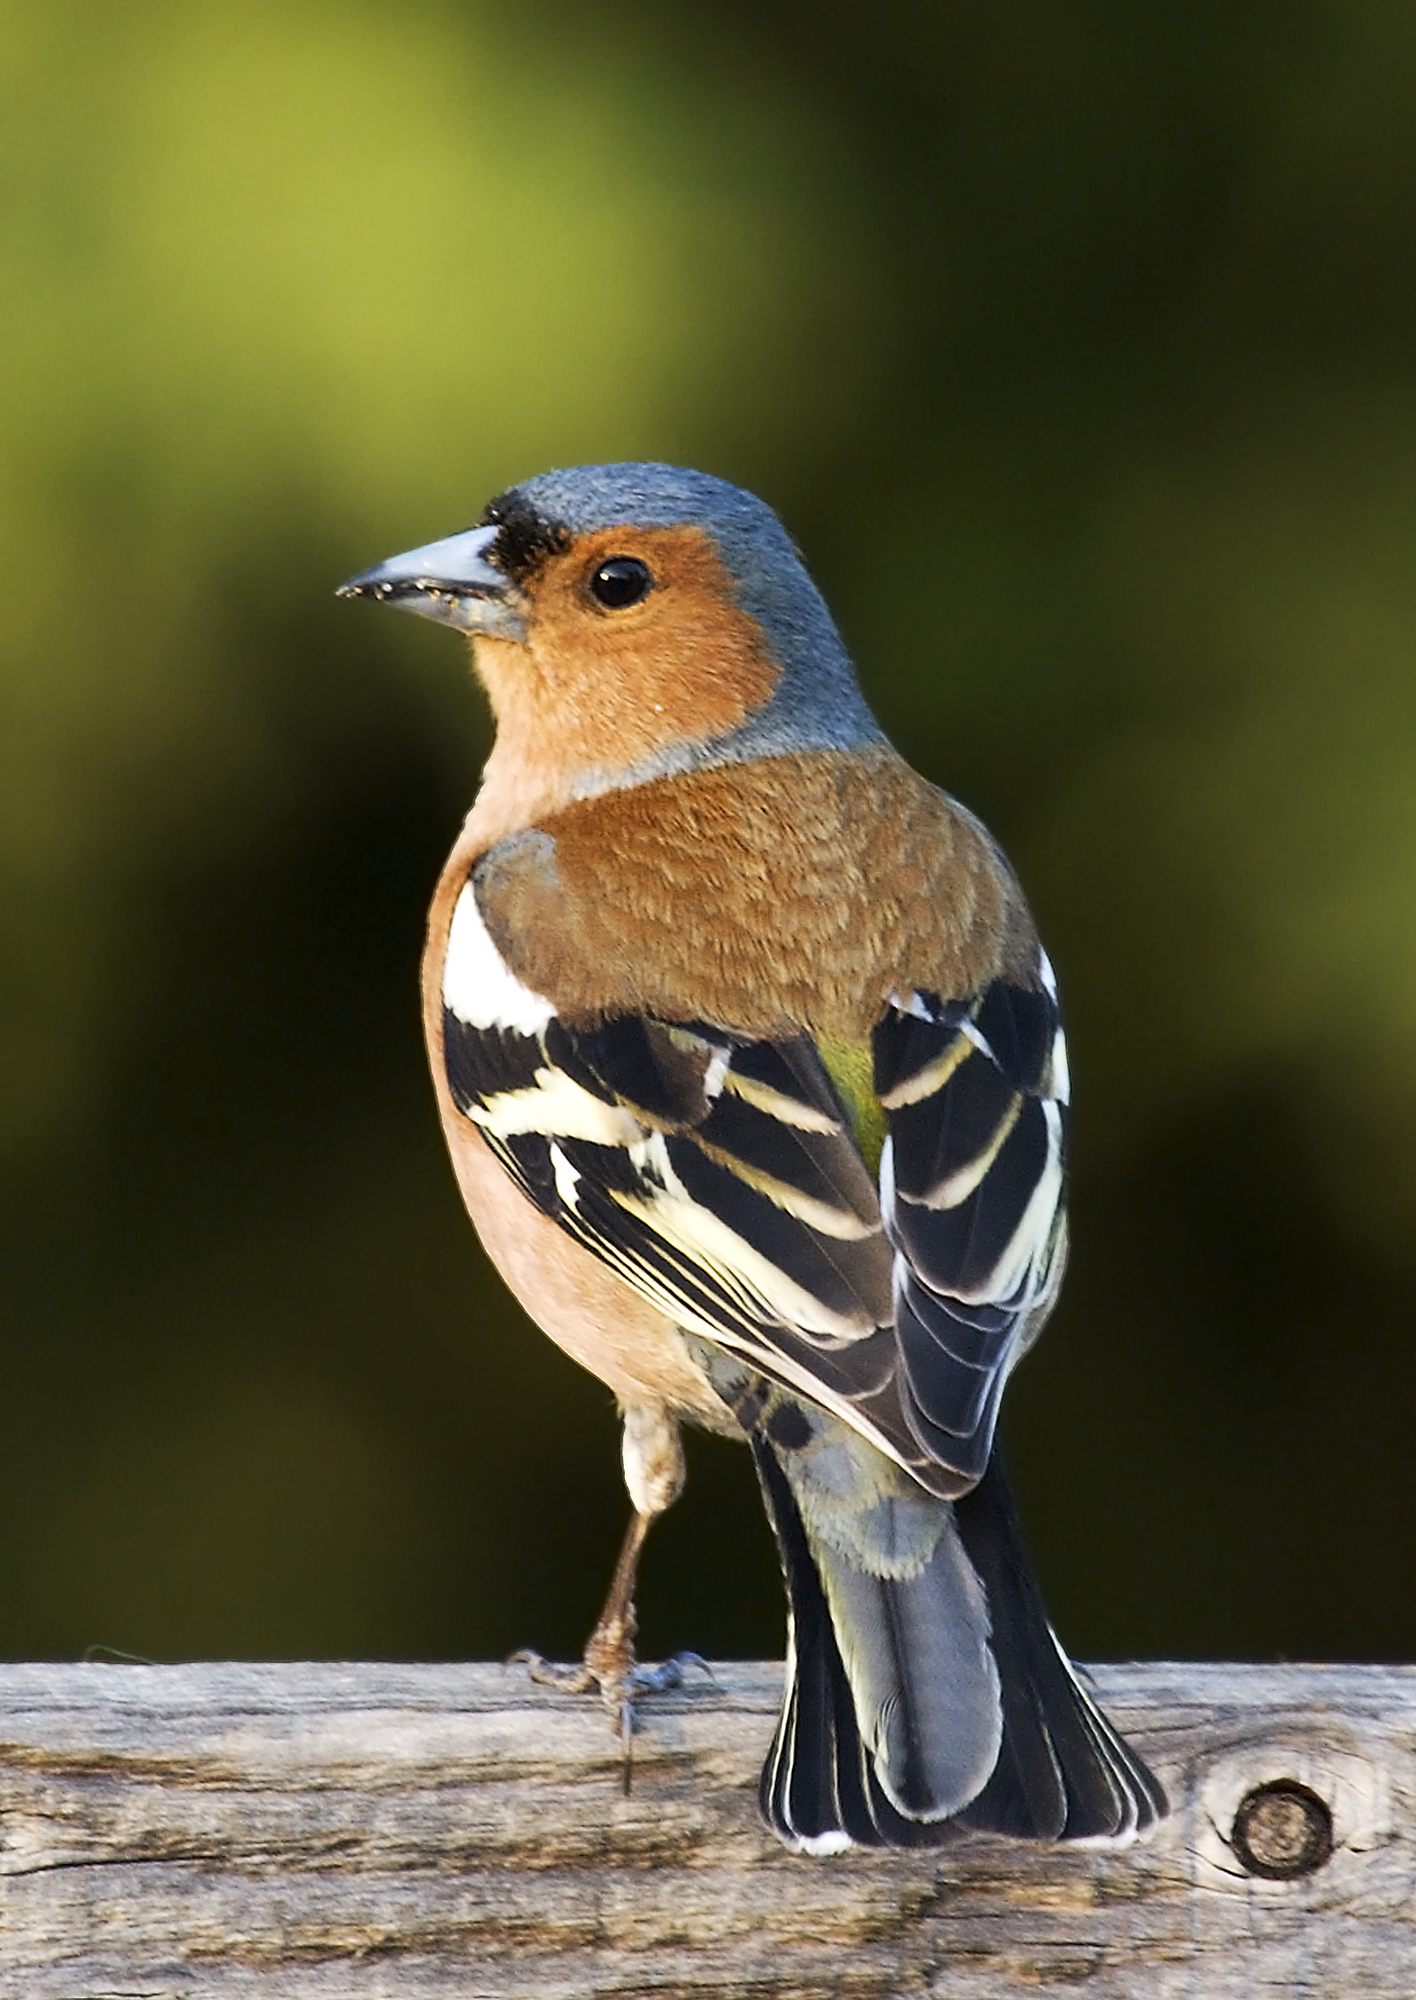 ({{Information |Description=Fringilla coelebs (chaffinch), male |Source=Own photo |Date= 21 April 2007 |Author=Self: Commons user MichaelMaggs Edited by: Arad |other_versions=[[Image:Fringilla coelebs (chaffinch), male.j)